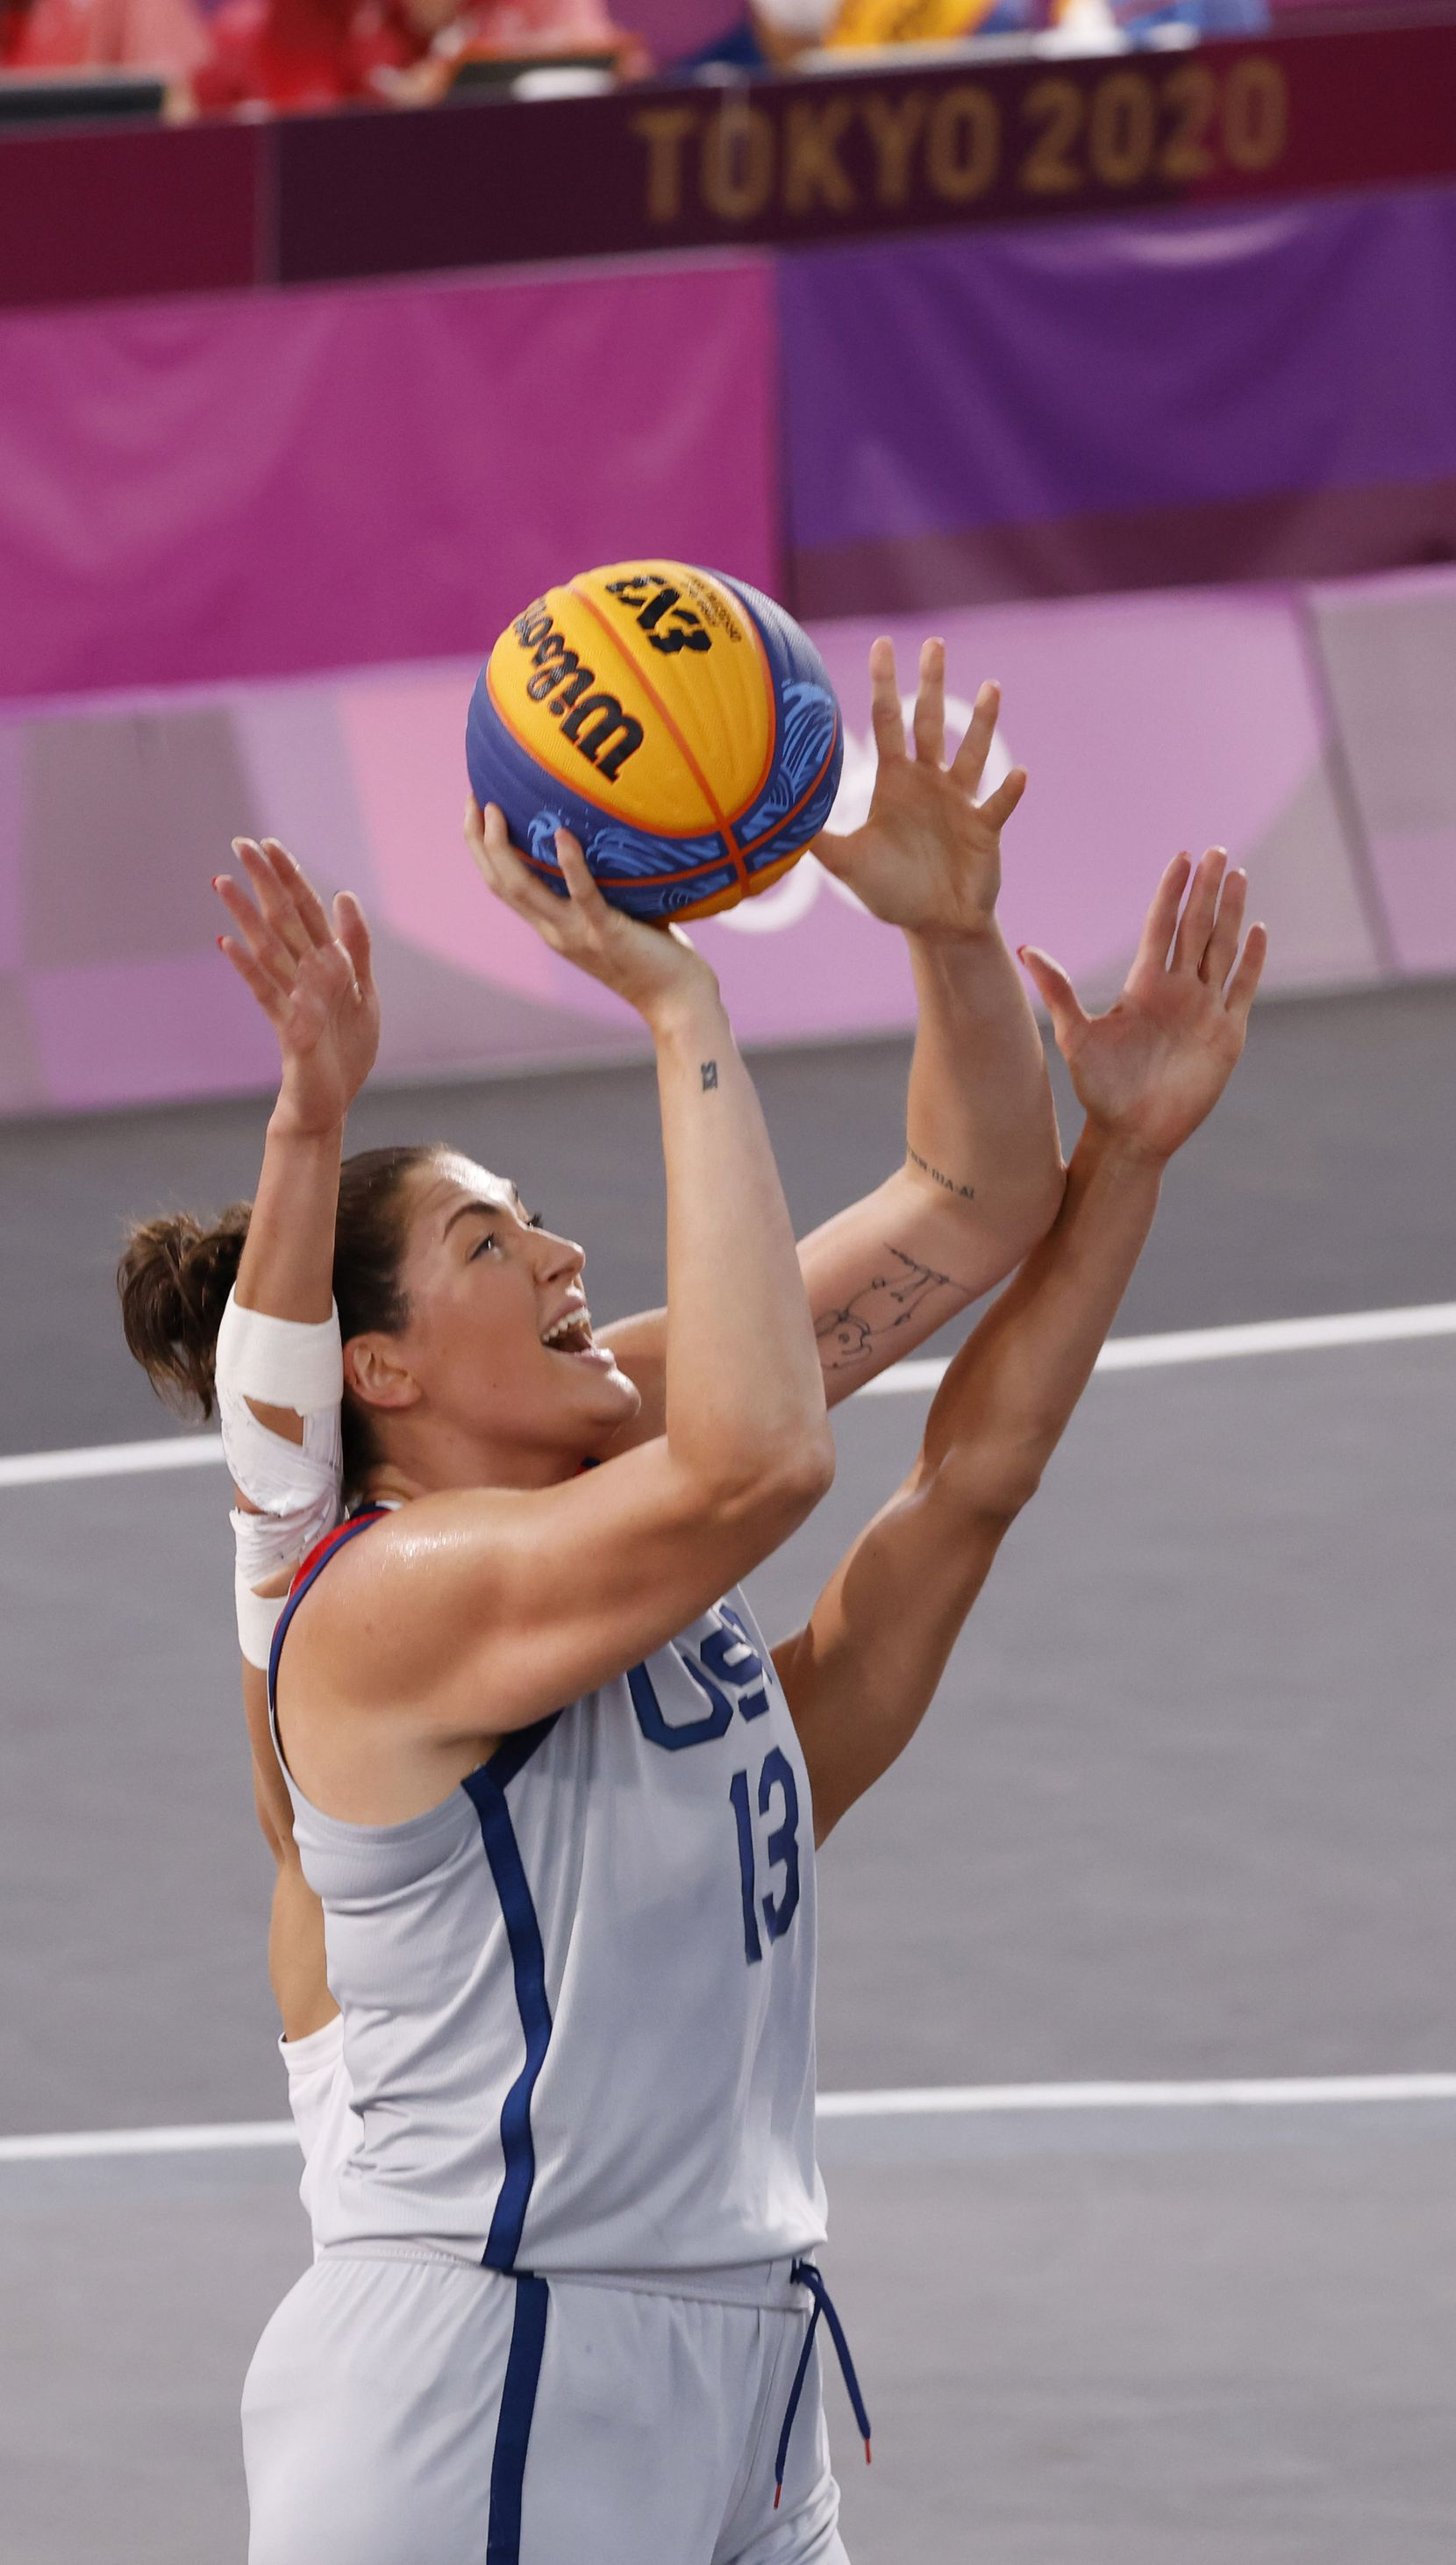 USA's Stefanie Dolson (13) shoots as she is defended by France's Laetitia Guapo (12) during a 3x3 women's basketball match during the postponed 2020 Tokyo Olympics at Aomi Urban Sports Park on Saturday, July 24, 2021, in Tokyo, Japan. USA defeated France 17-10 in the game. (Vernon Bryant/The Dallas Morning News)